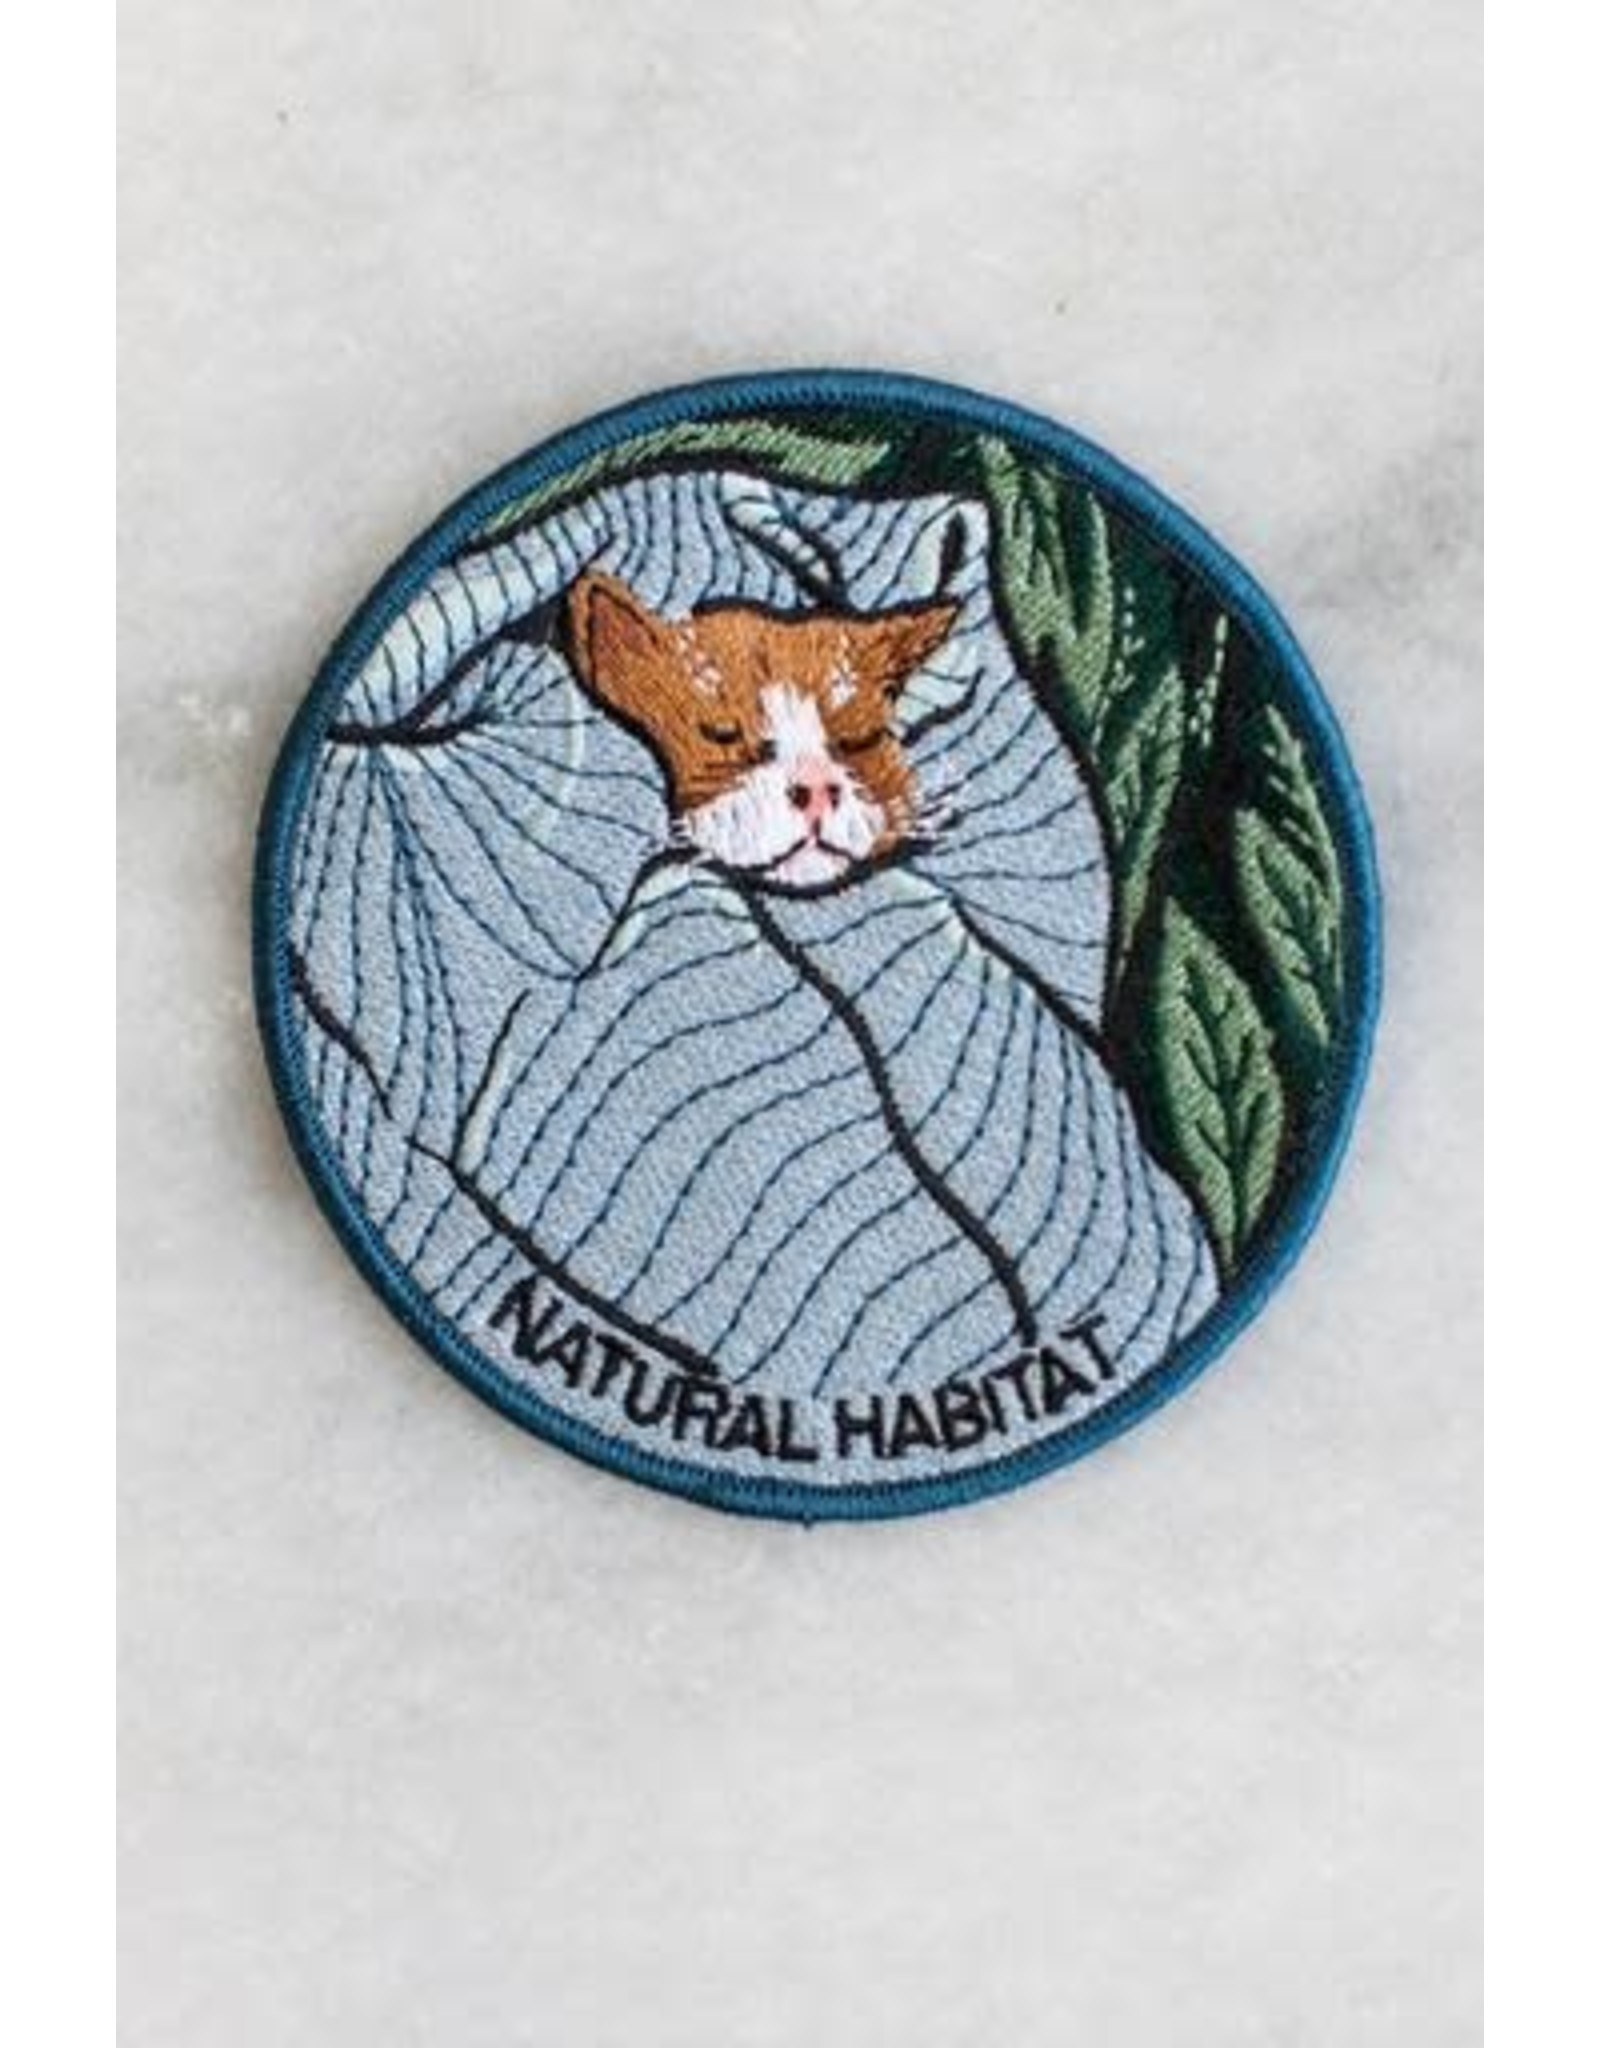 Stay Home Club - Iron On Patch/Natural Habitat Cat